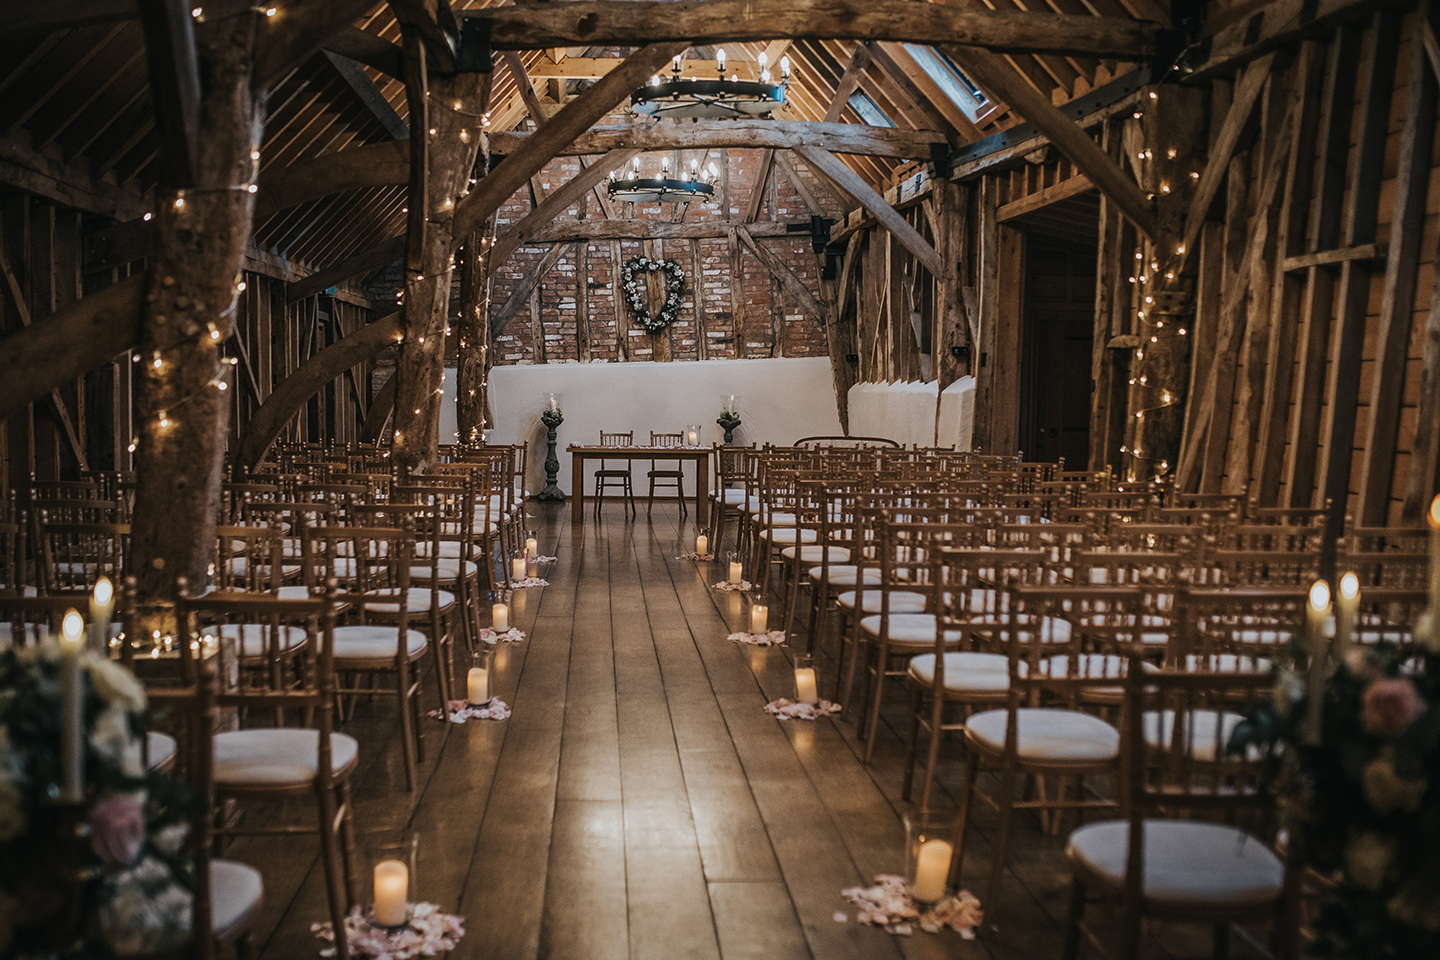 The Rickety Barn at Bassmead Manor Barns is set up for a beautiful wedding ceremony